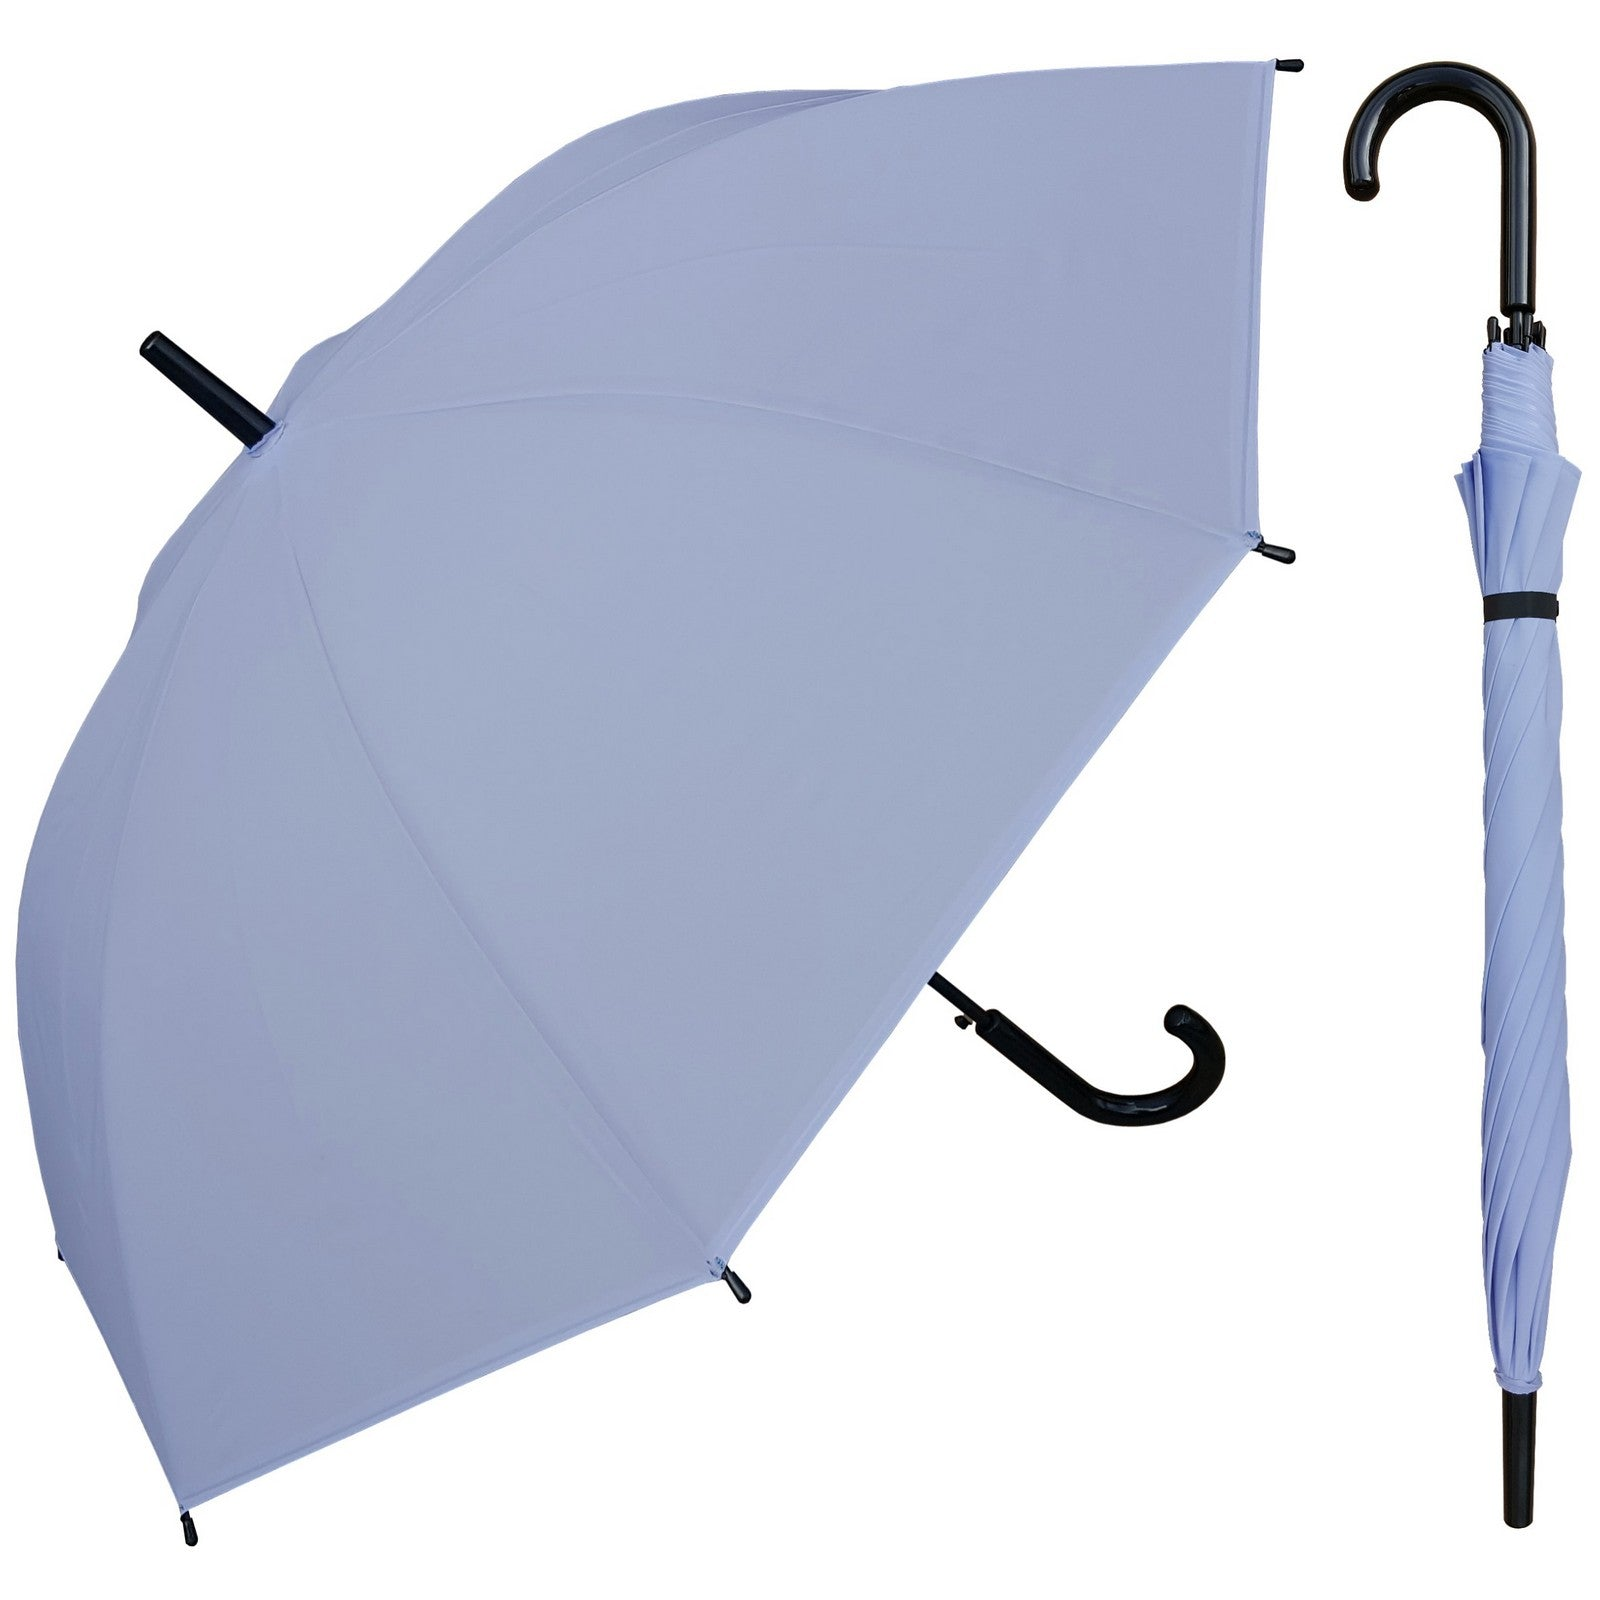 eda2c7007b2a5 Wholesale Bright Plastic Canopy Black Hook Handle Umbrella ...